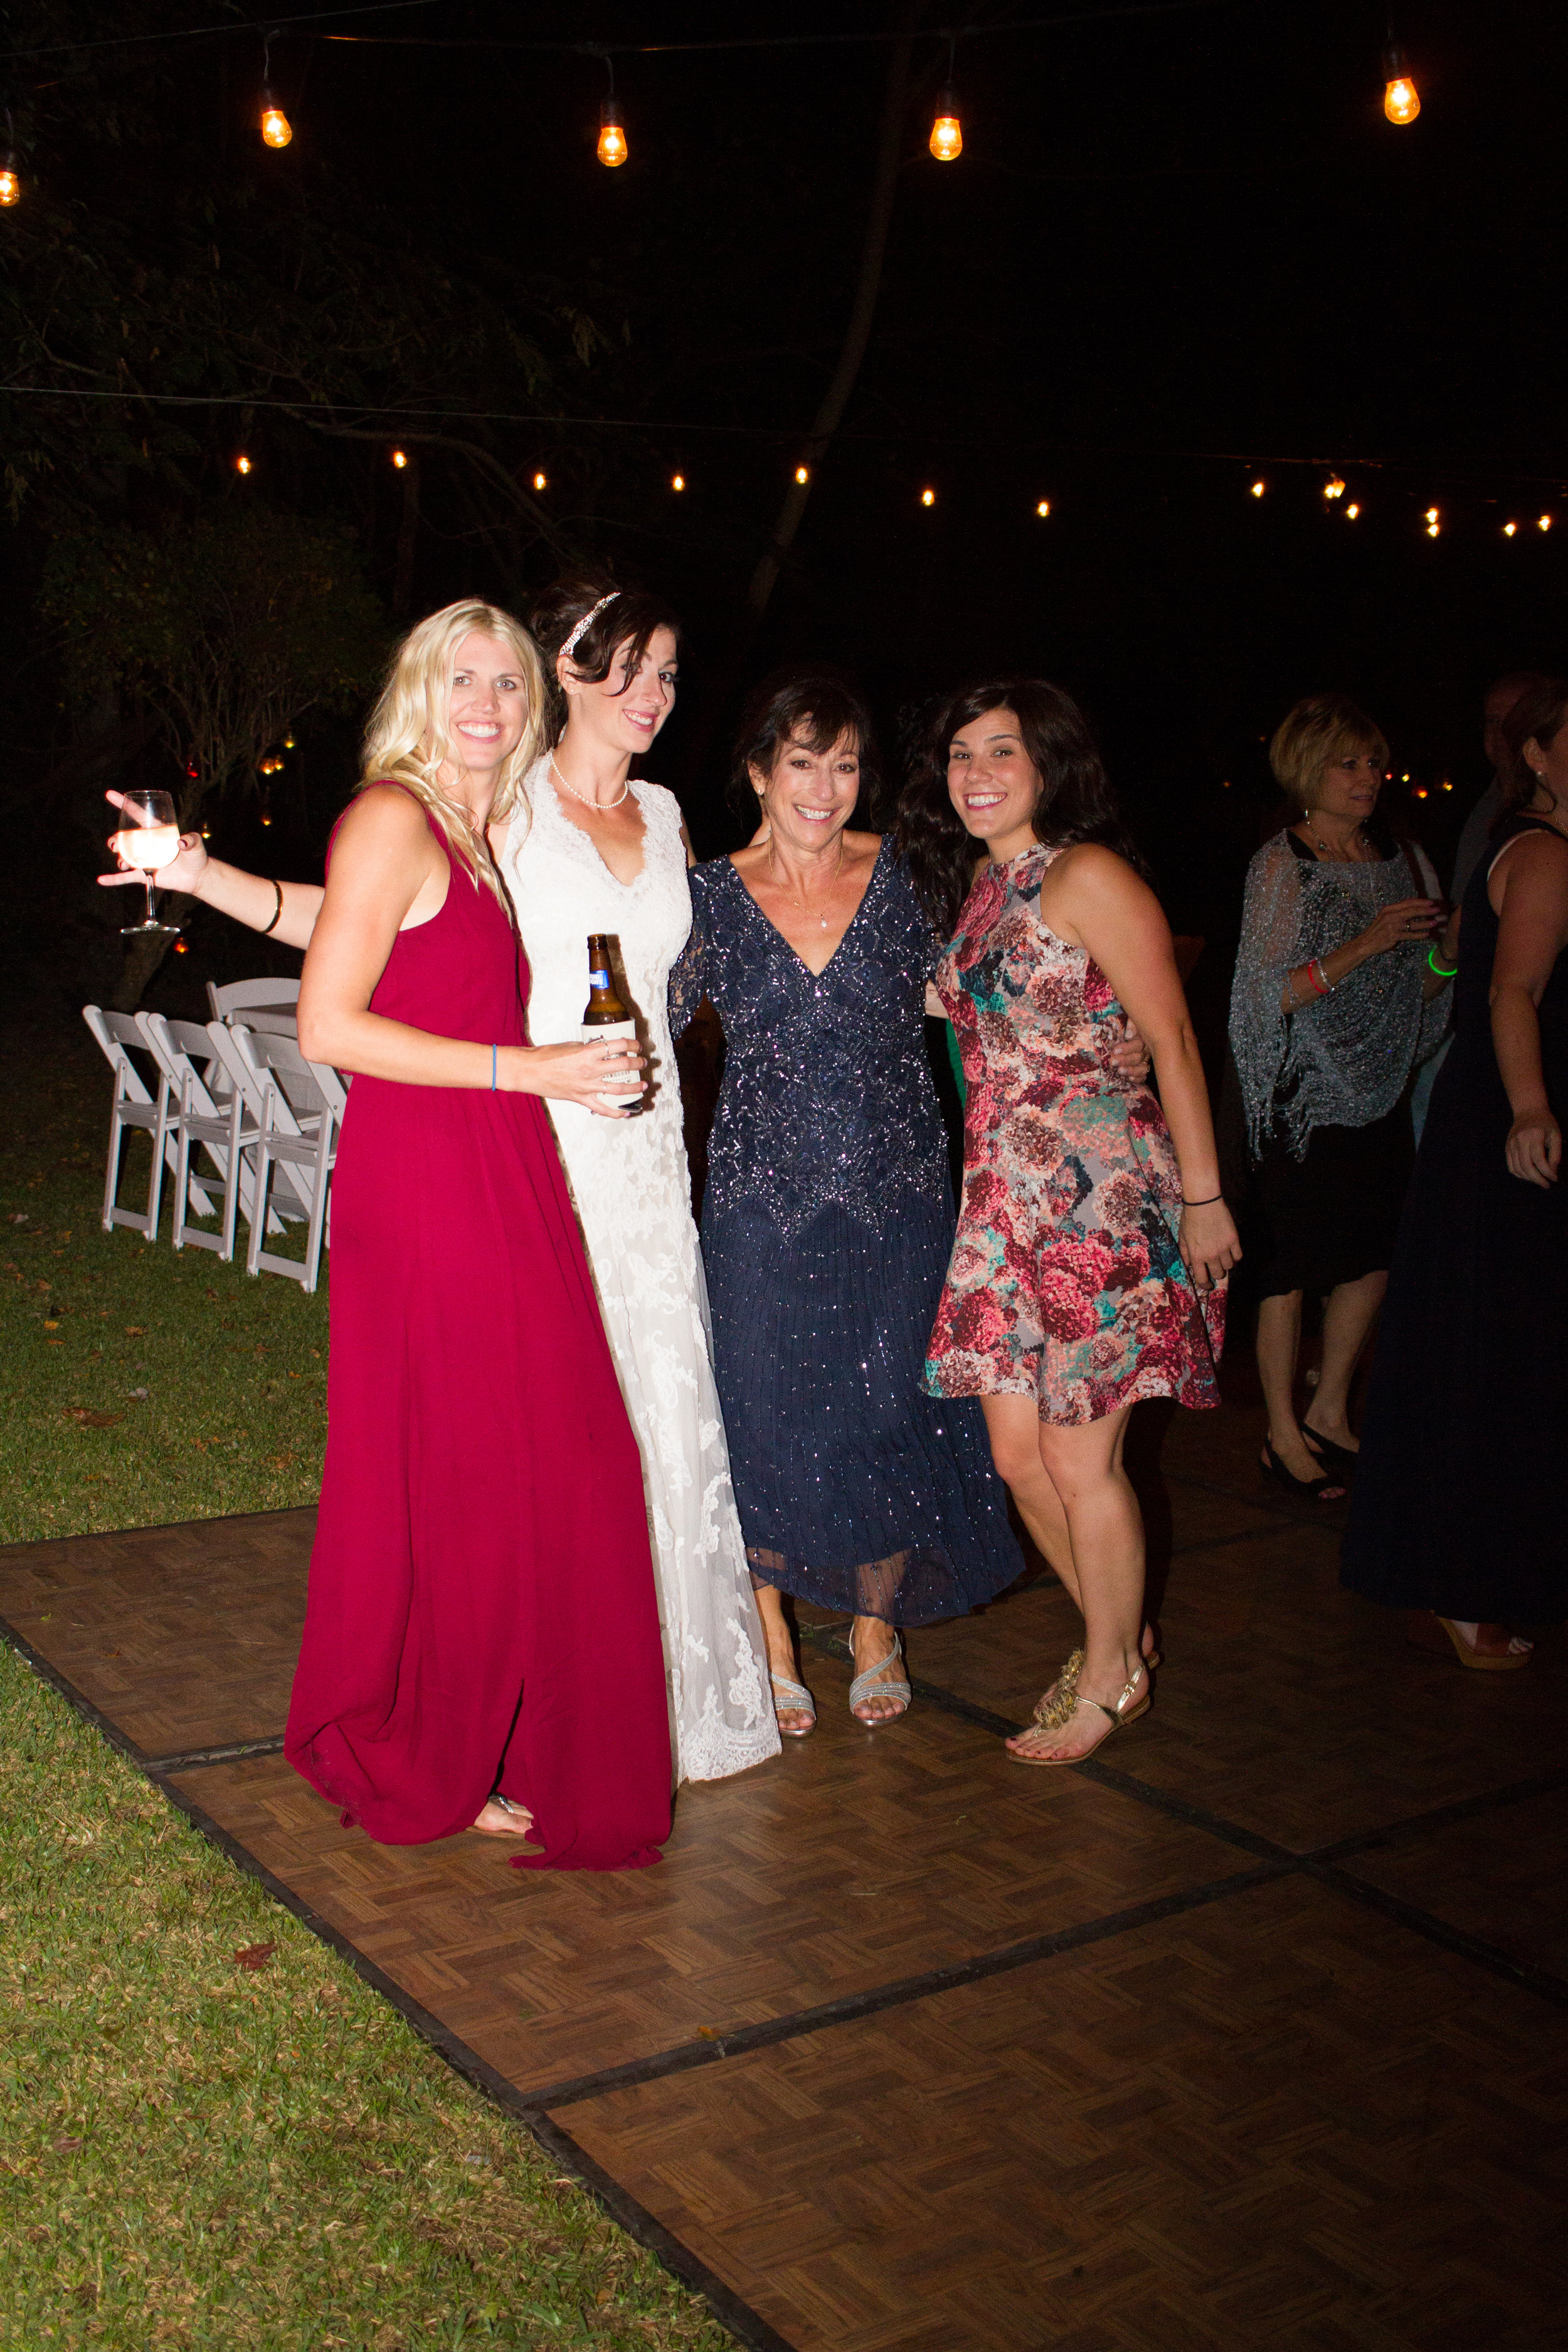 Jacqueline and Shawn Wedding (555 of 597).jpg